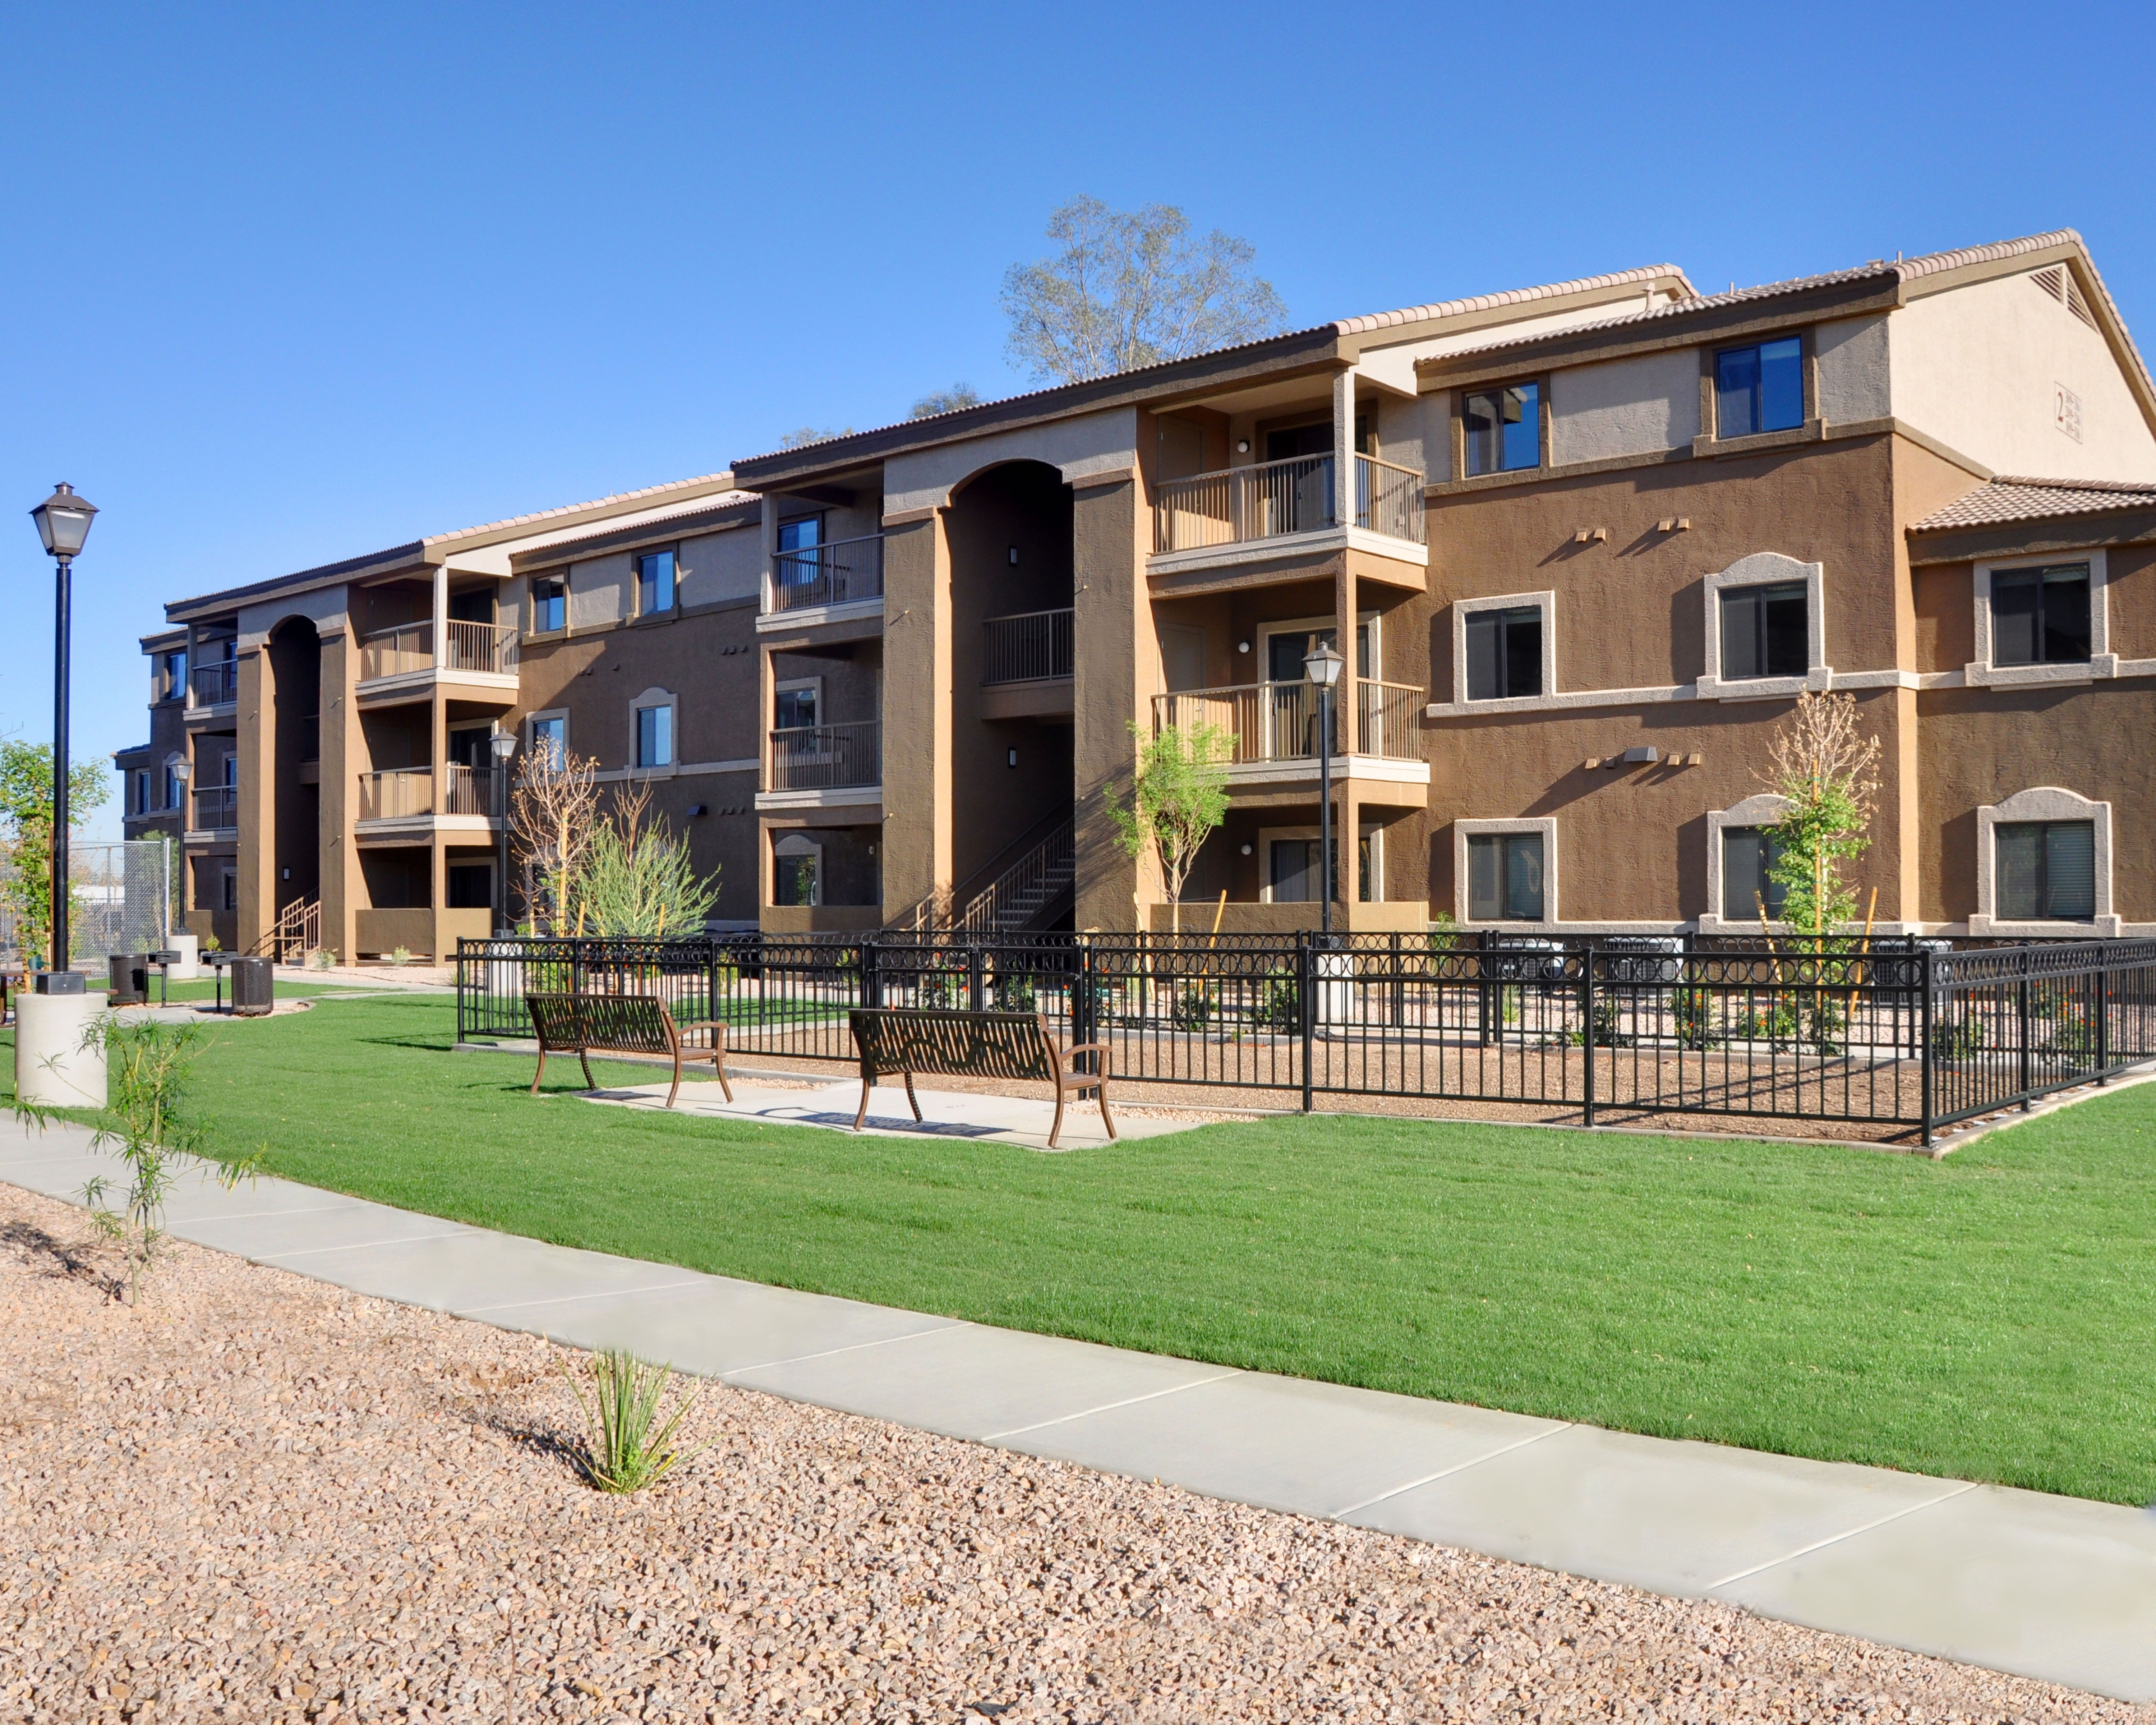 47 Units Smoke Free Affordable Multi Family Housing In Phoenix Az Family House Building Design Low Income Housing